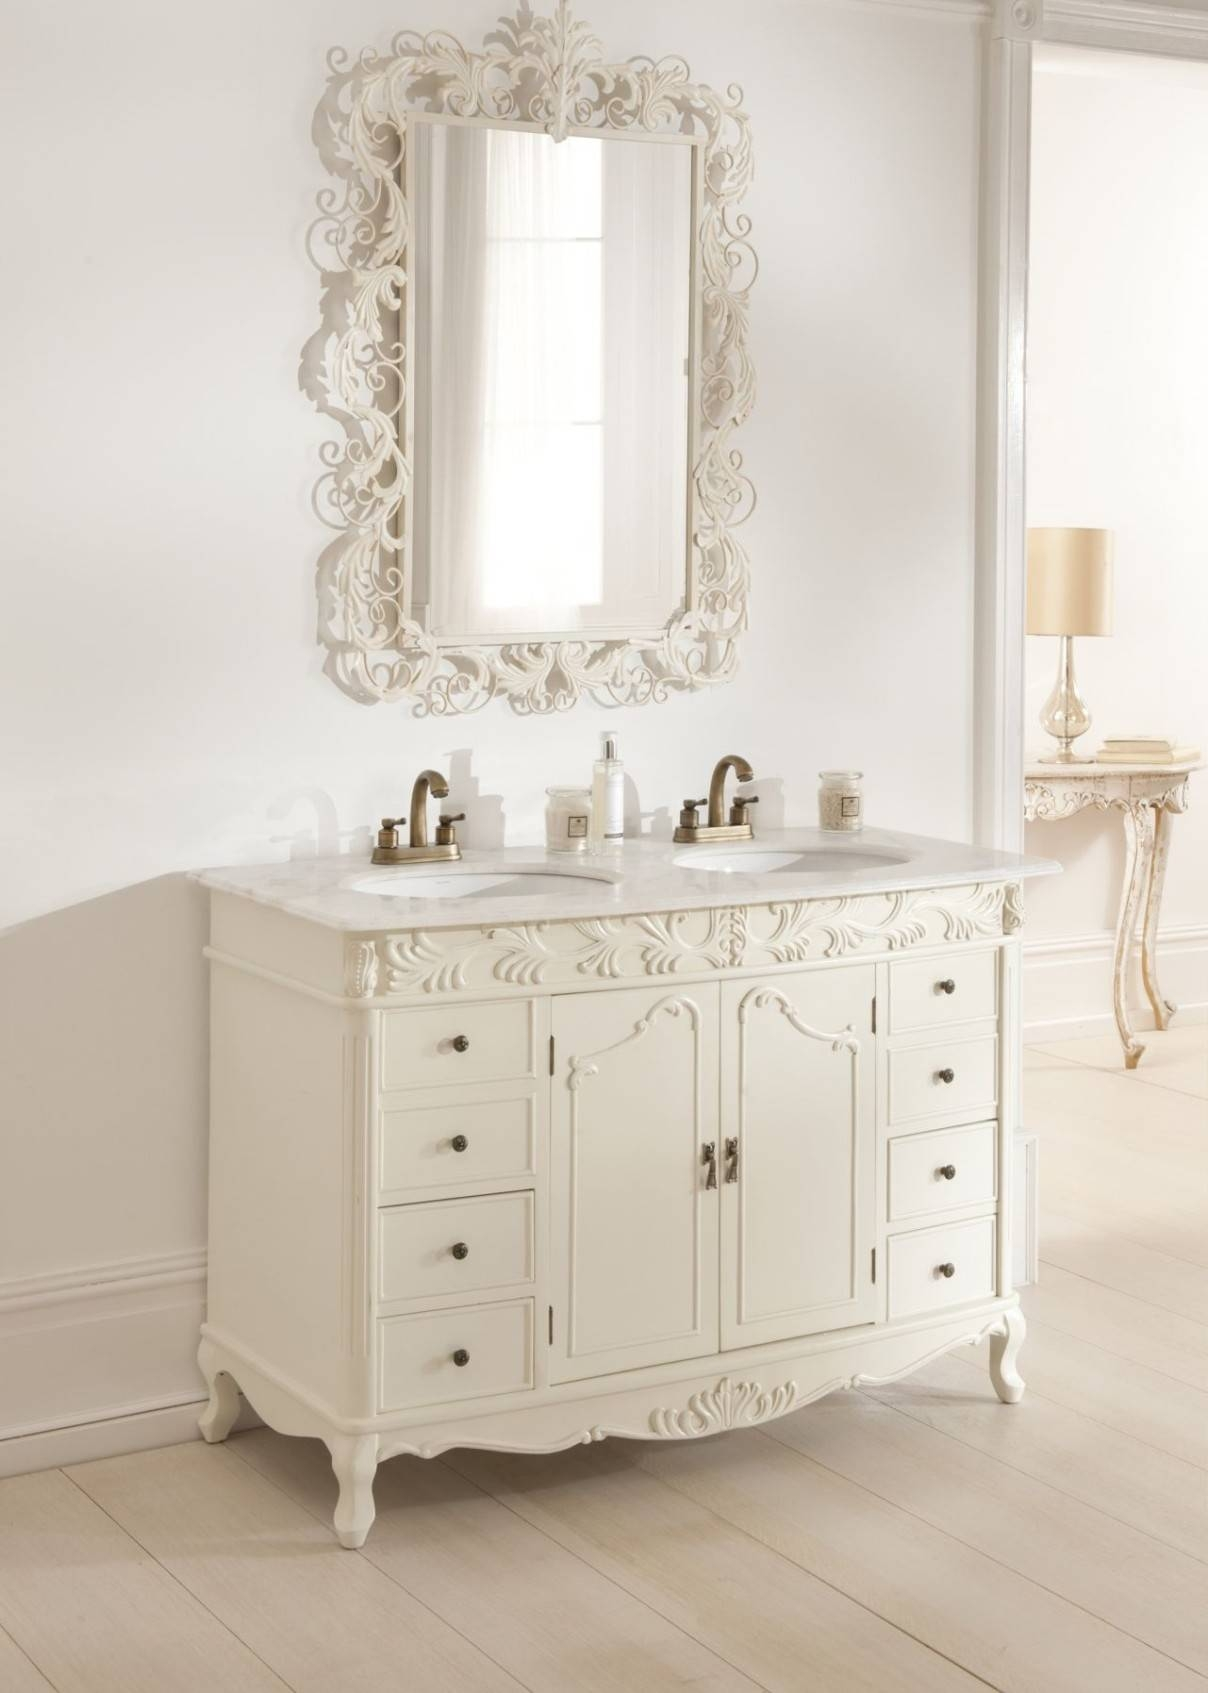 Bathroom Mirrors : Vintage Mirrors For Bathrooms Interior Design Within Vintage Mirrors For Bathrooms (View 14 of 15)